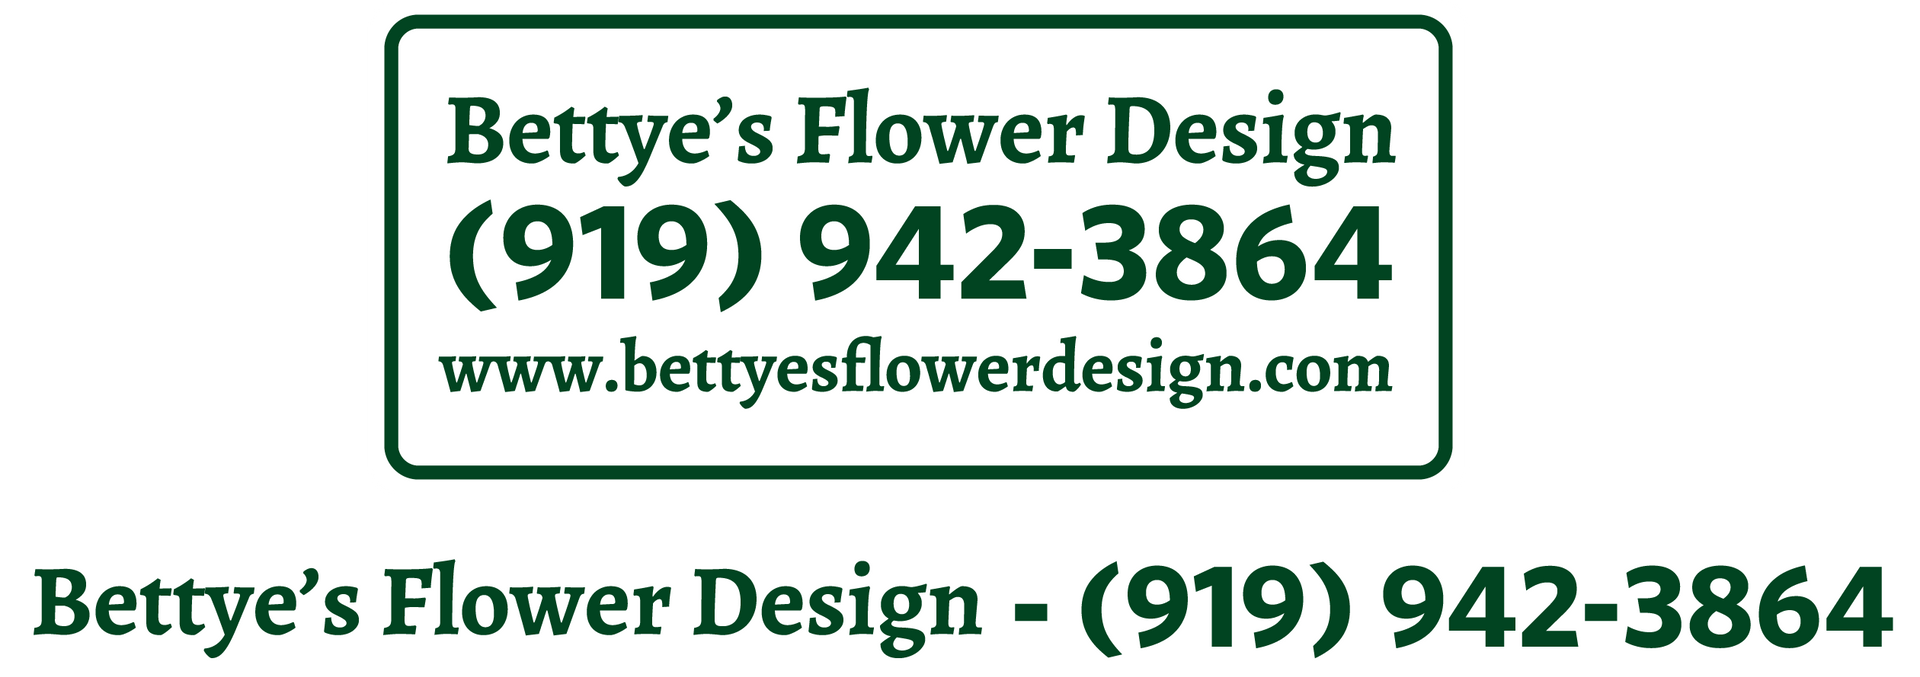 Bettye's Flower Design Magnets